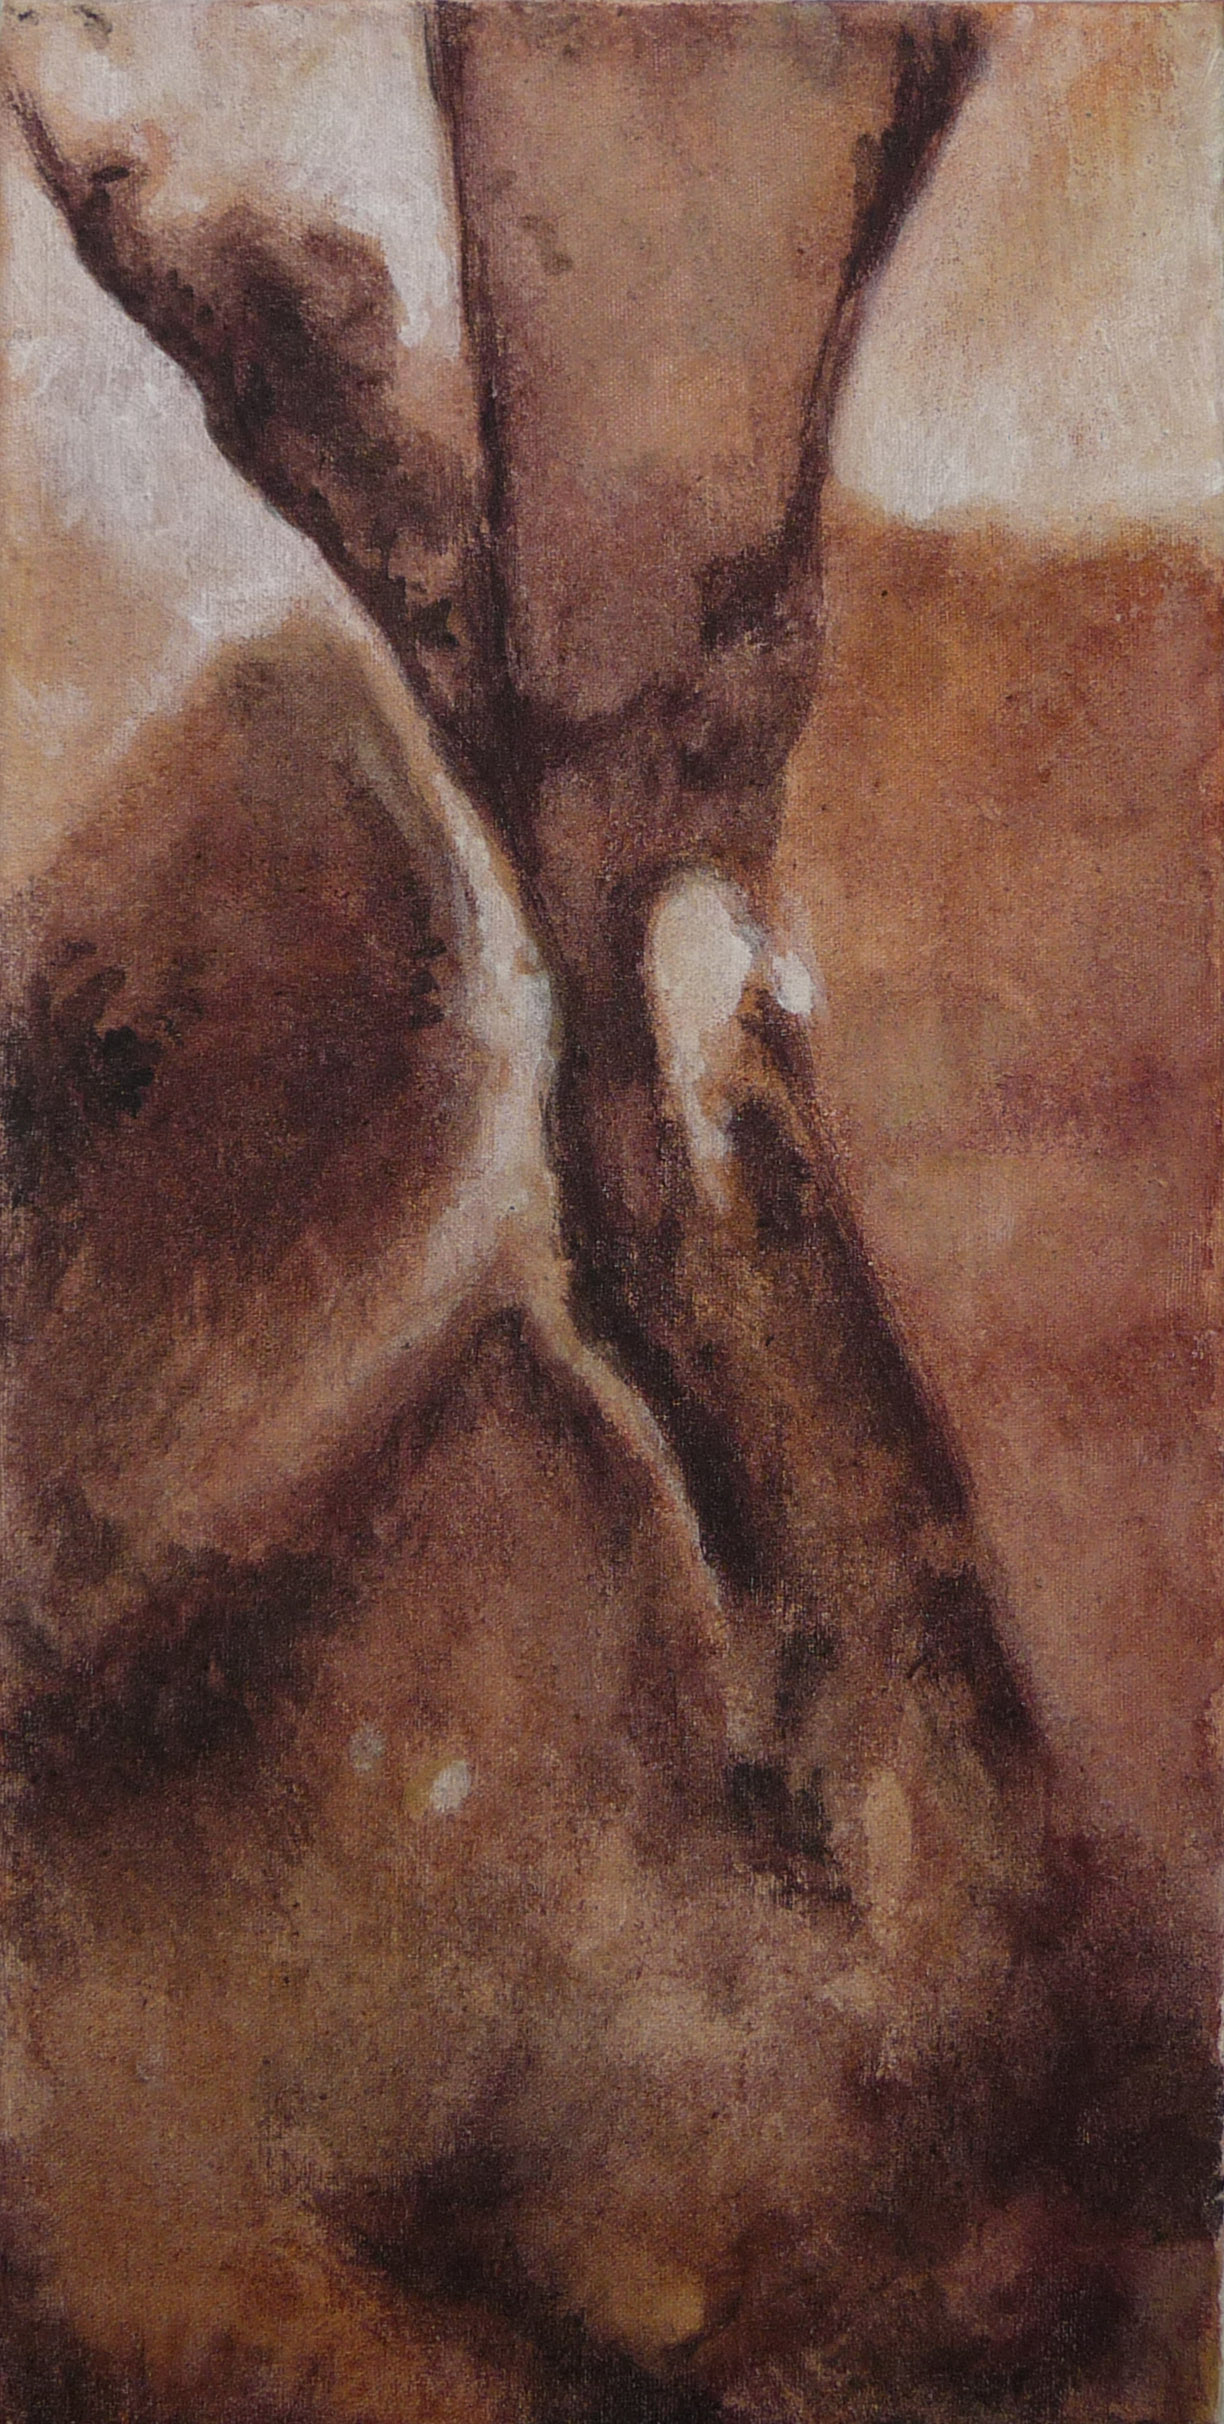 <p><strong>Colour study</strong><br />Punic wax, 20 x 40 cm</p>